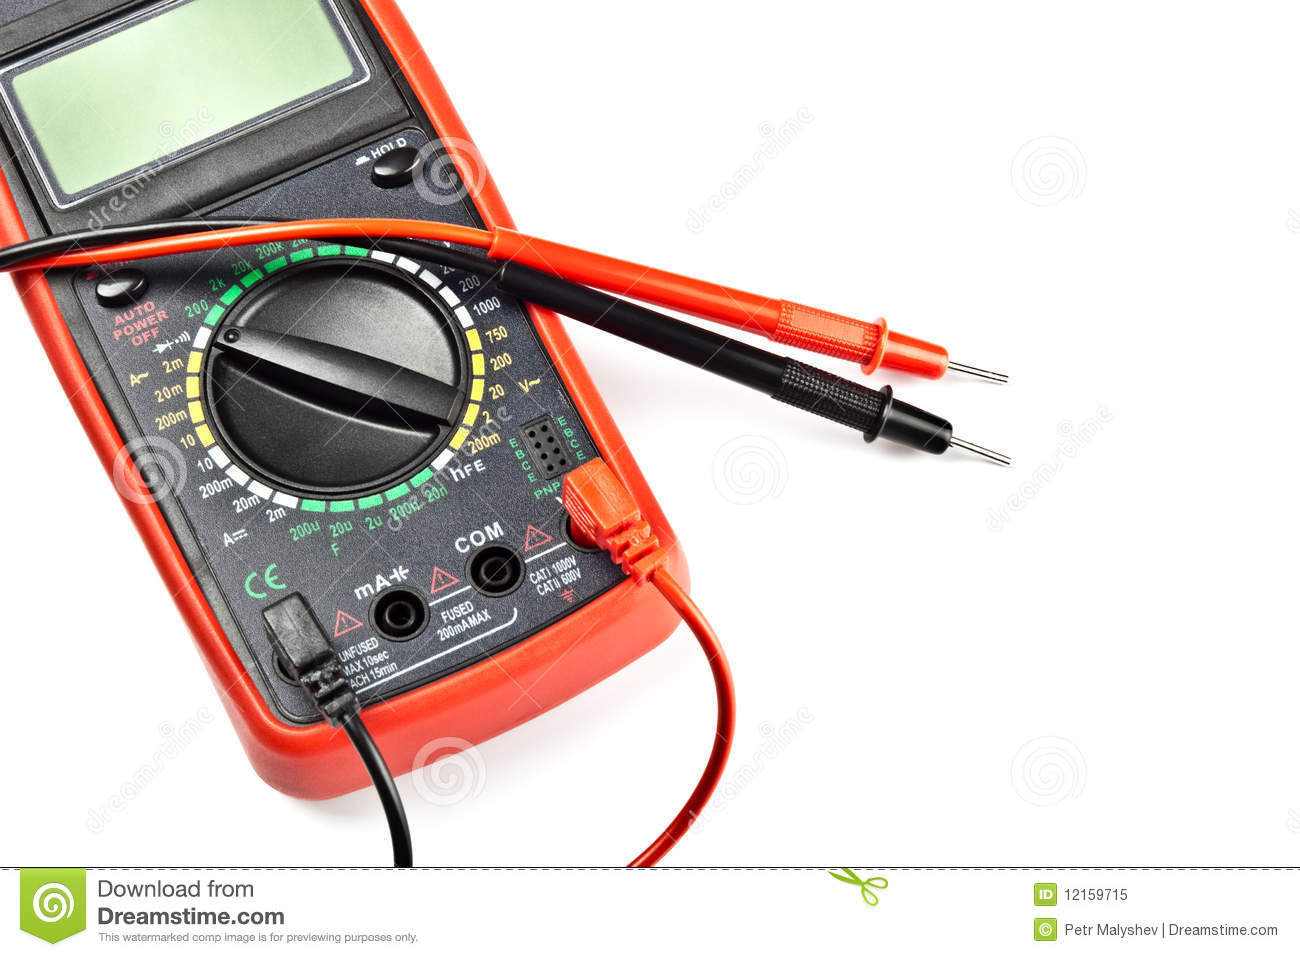 Electronic Measuring Devices : Electronic measuring device royalty free stock photo